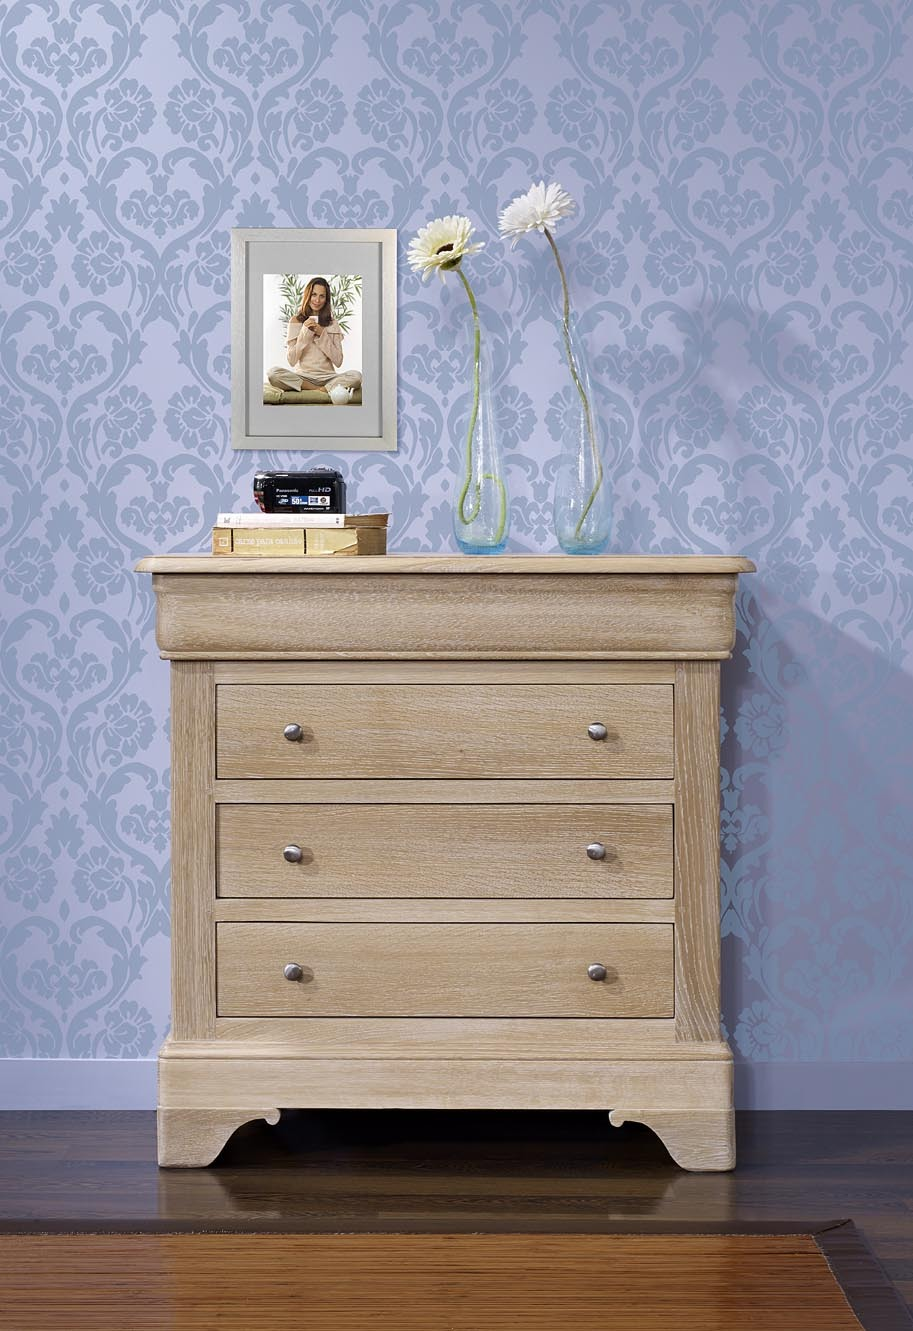 commode 4 tiroirs en ch ne de style louis philippe. Black Bedroom Furniture Sets. Home Design Ideas